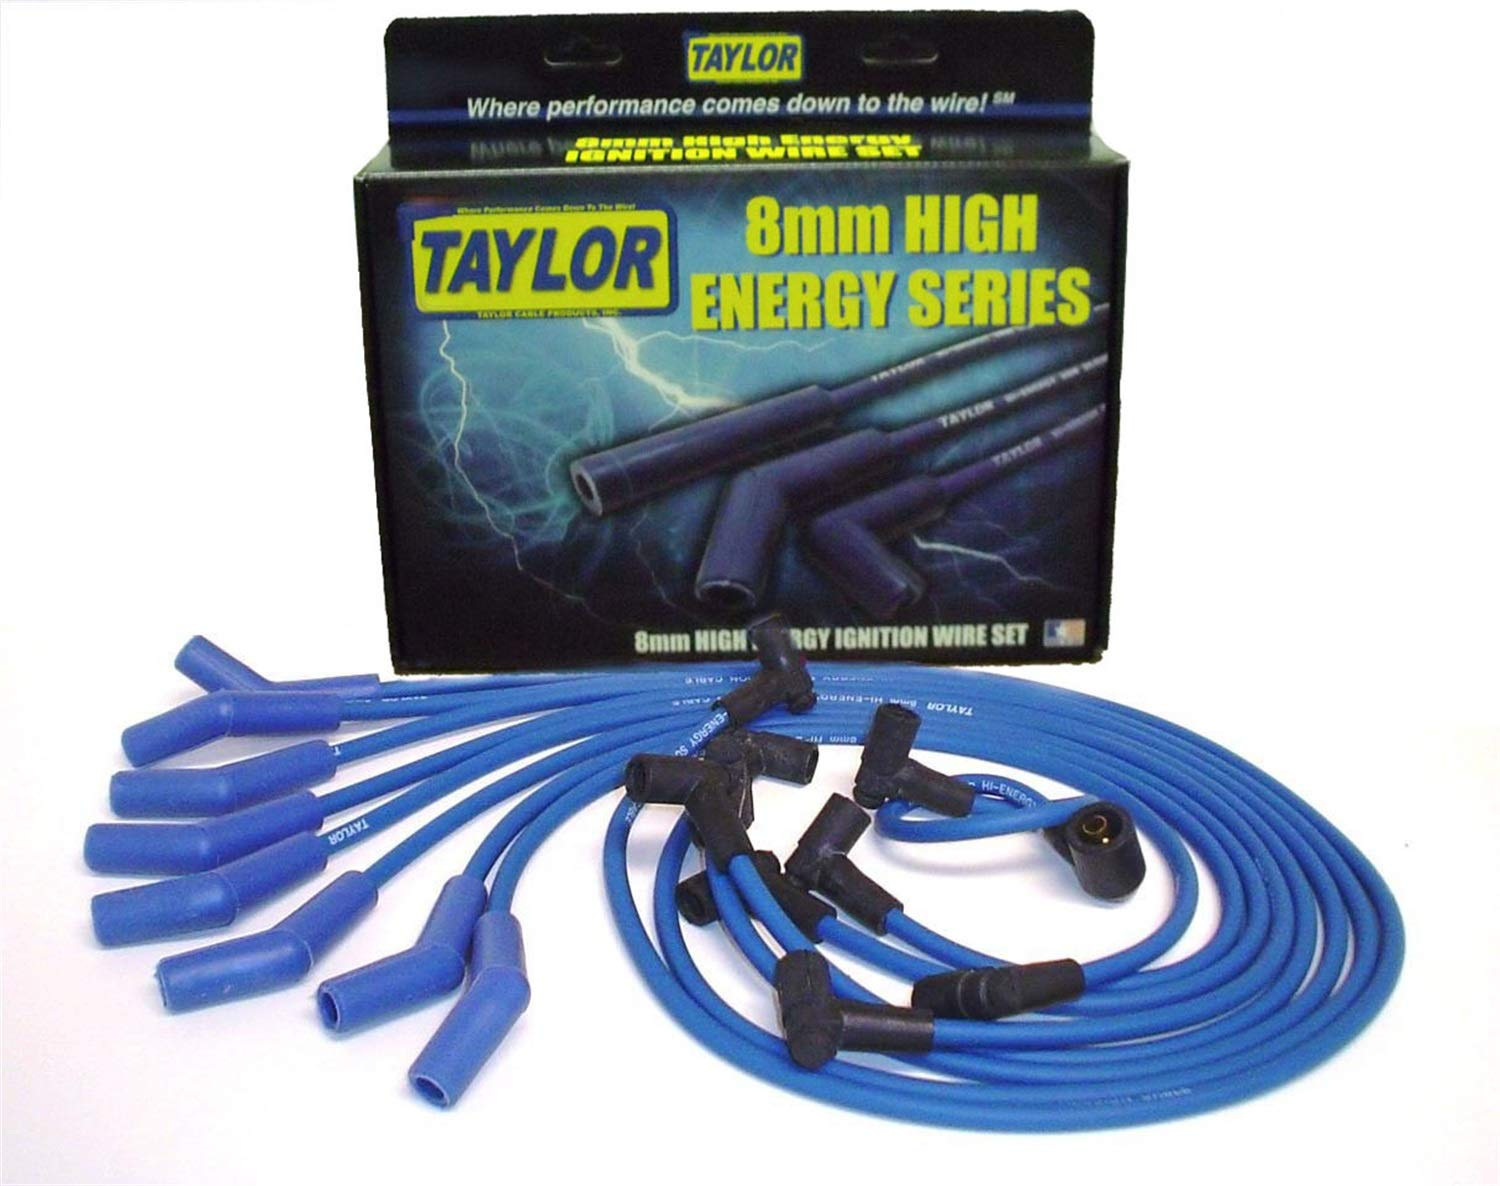 Taylor Cable 64604 Blue 8mm High Energy Spark Plug Custom Wire Set by Taylor Cable